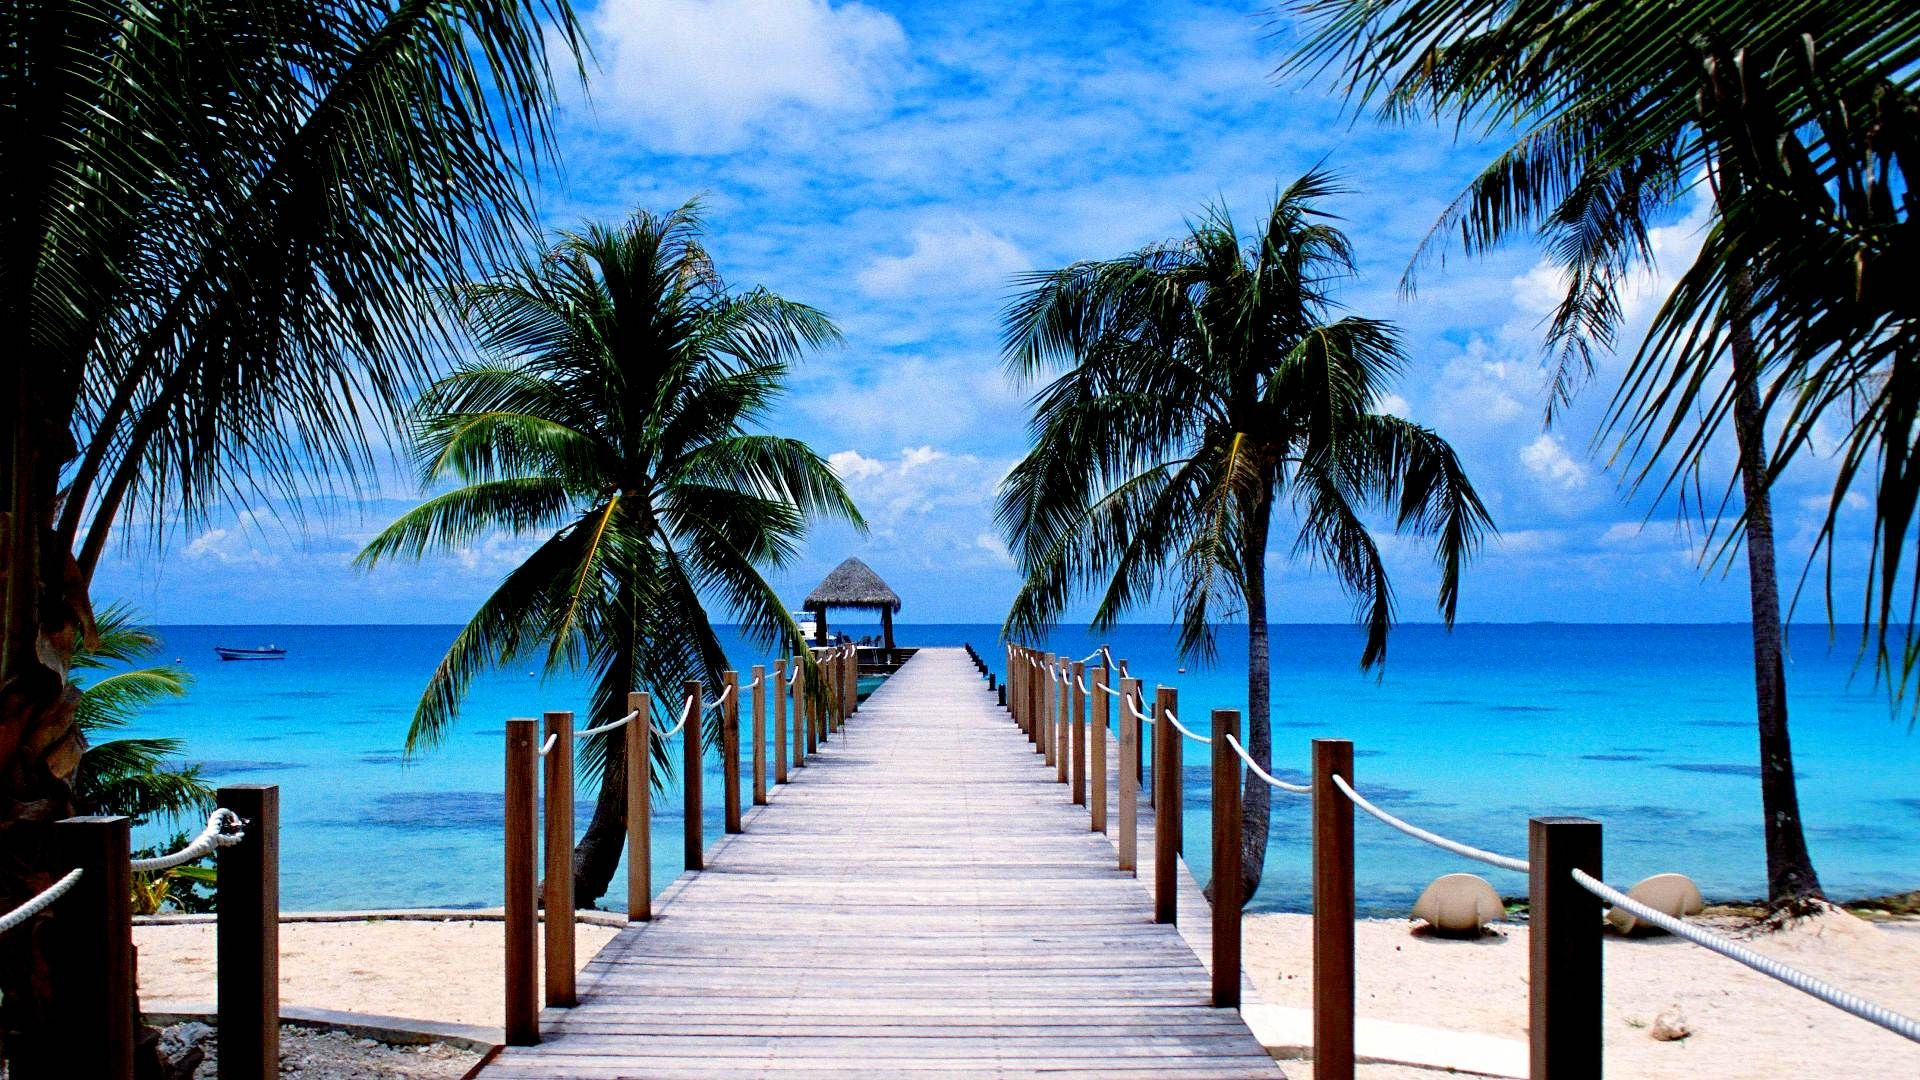 Image For Tropical Beach Paradise Wallpaper High Quality